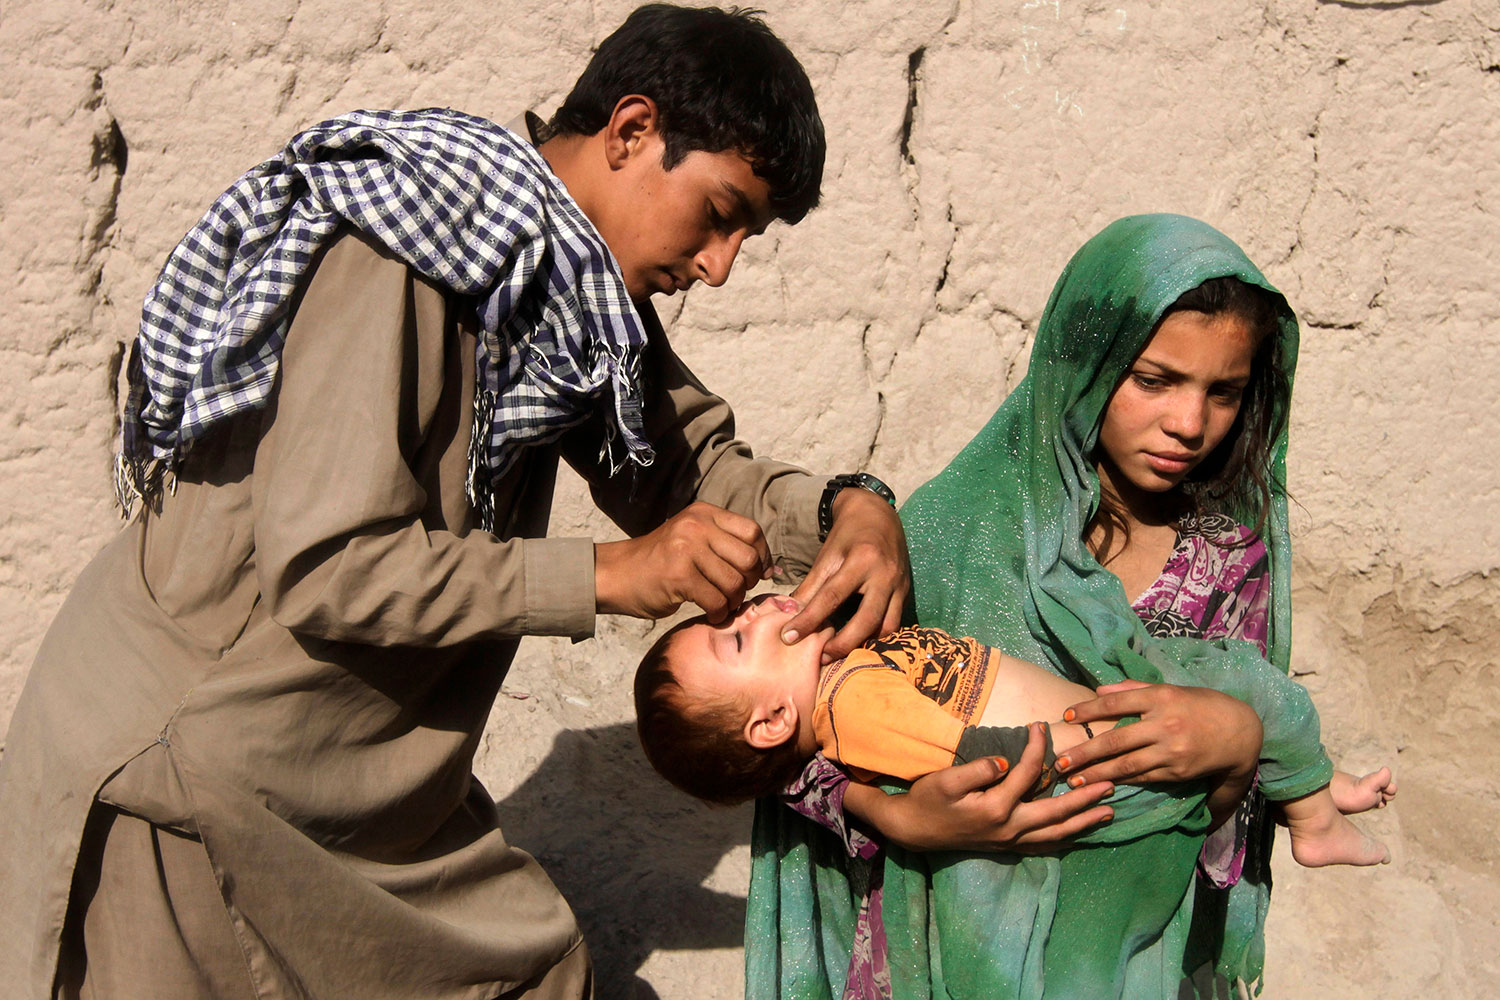 A child receives polio vaccination during an anti-polio campaign on the outskirts of Jalalabad, Afghanistan on August 18, 2014. In the photo a young man with a black-and-white checkered scarf slung over his shoulder administers drops to a baby held in the arms of a young woman wearing a bright green headdress.